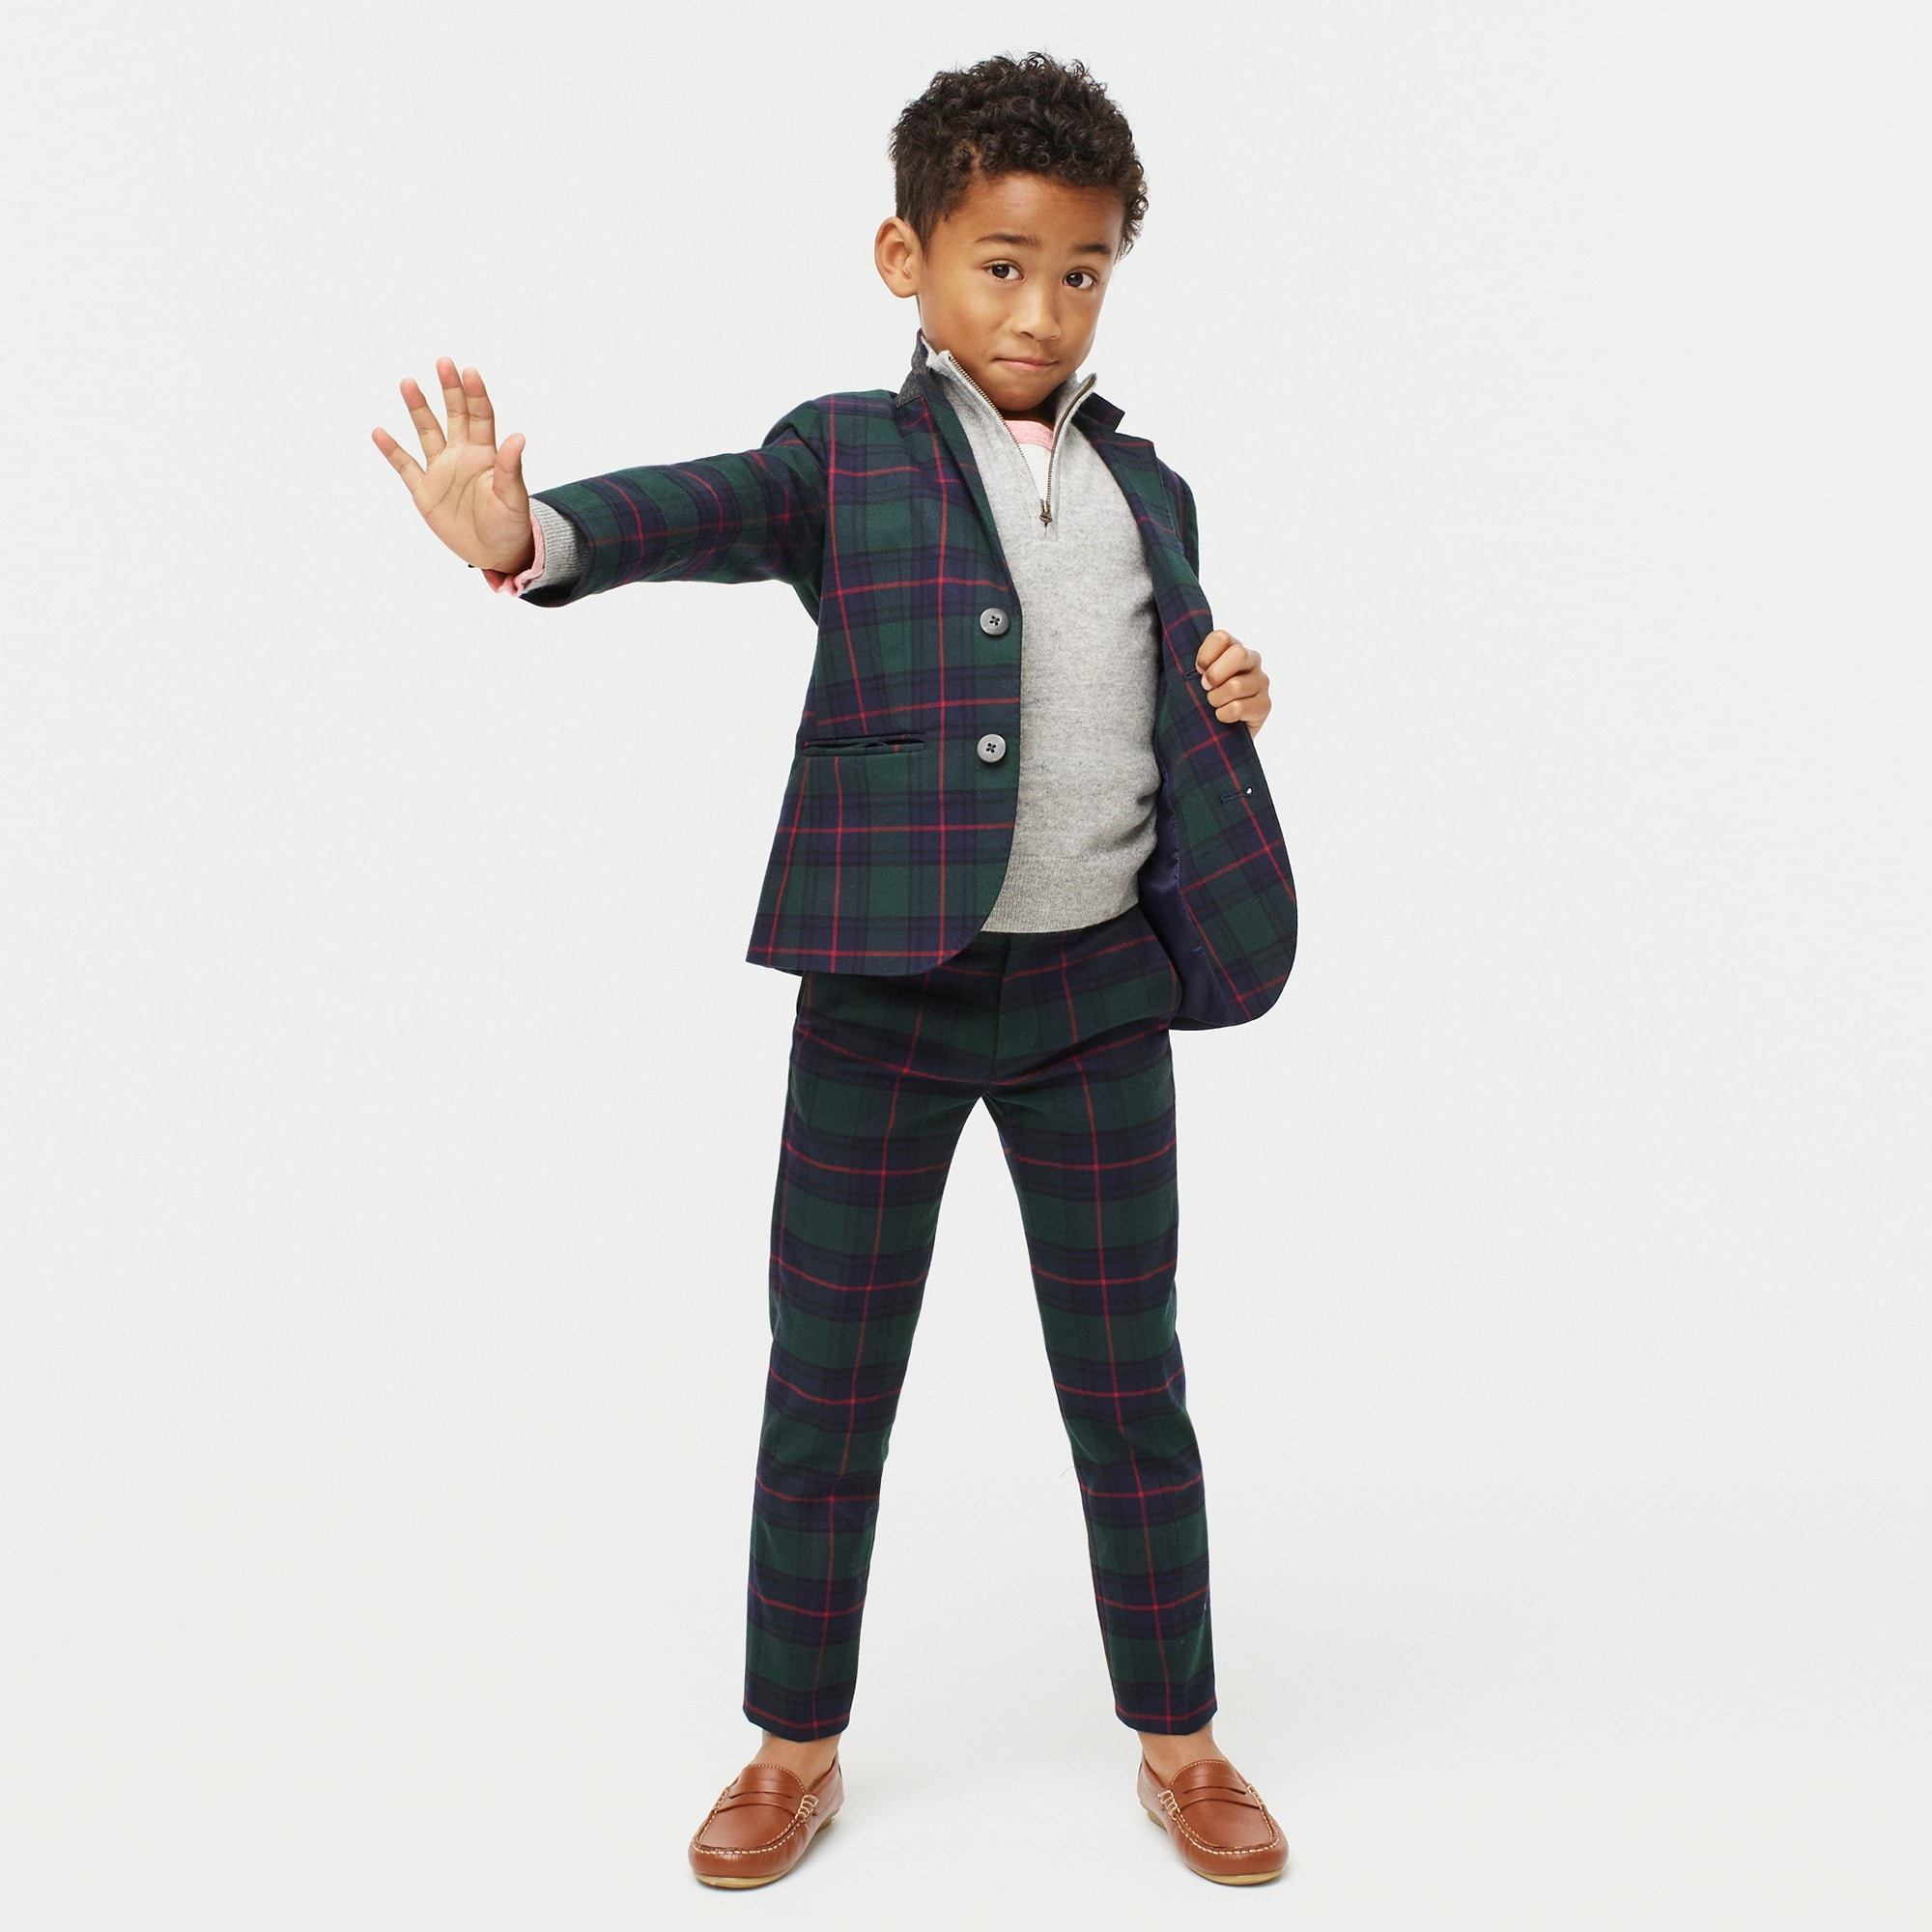 boys Boys' Ludlow suit jacket in Black Watch plaid